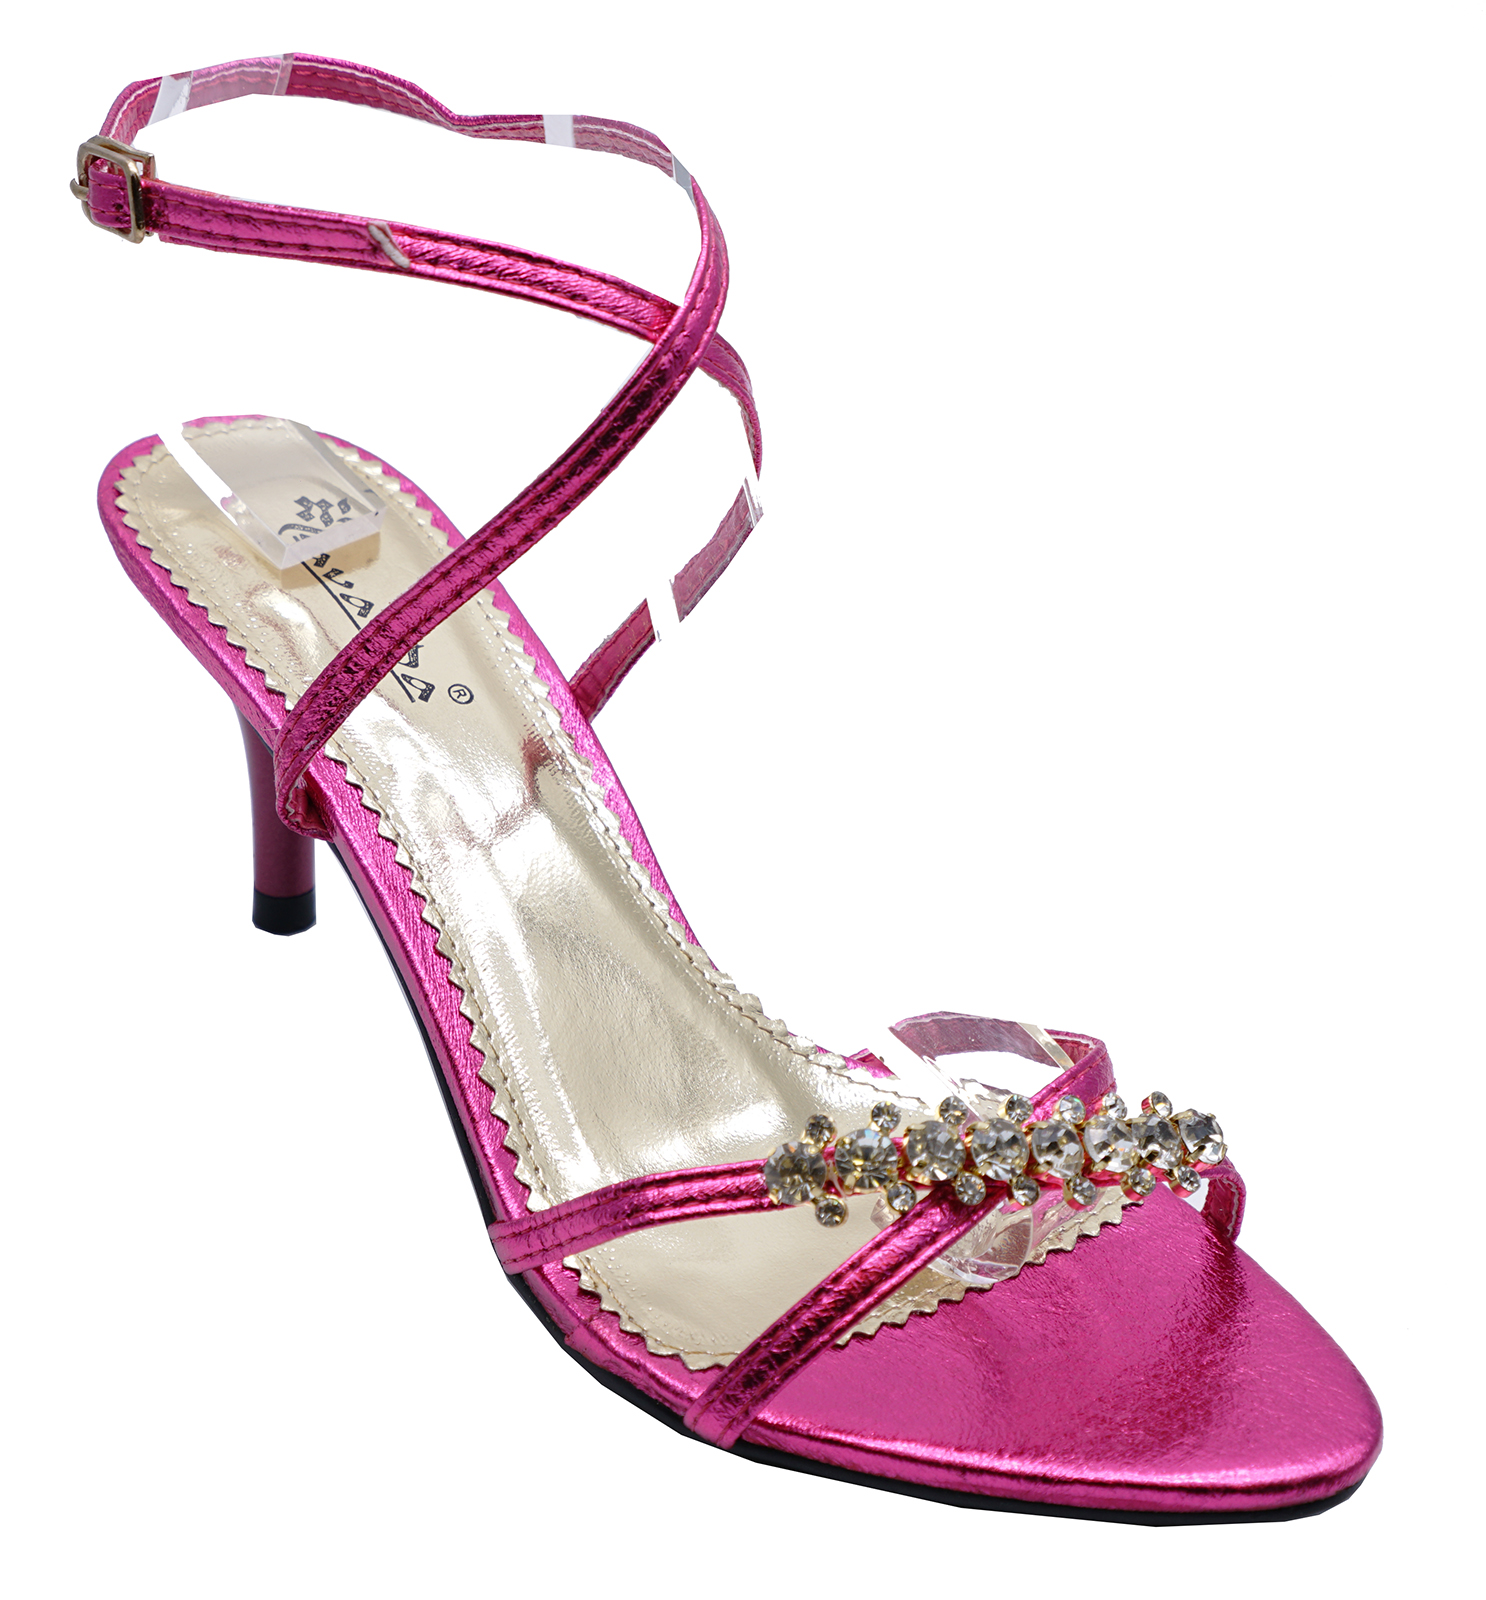 d09060e0179b Details about WOMENS PINK WEDDING STRAPPY PROM BRIDESMAID DIAMANTE SANDALS  SHOES SIZES 3-8